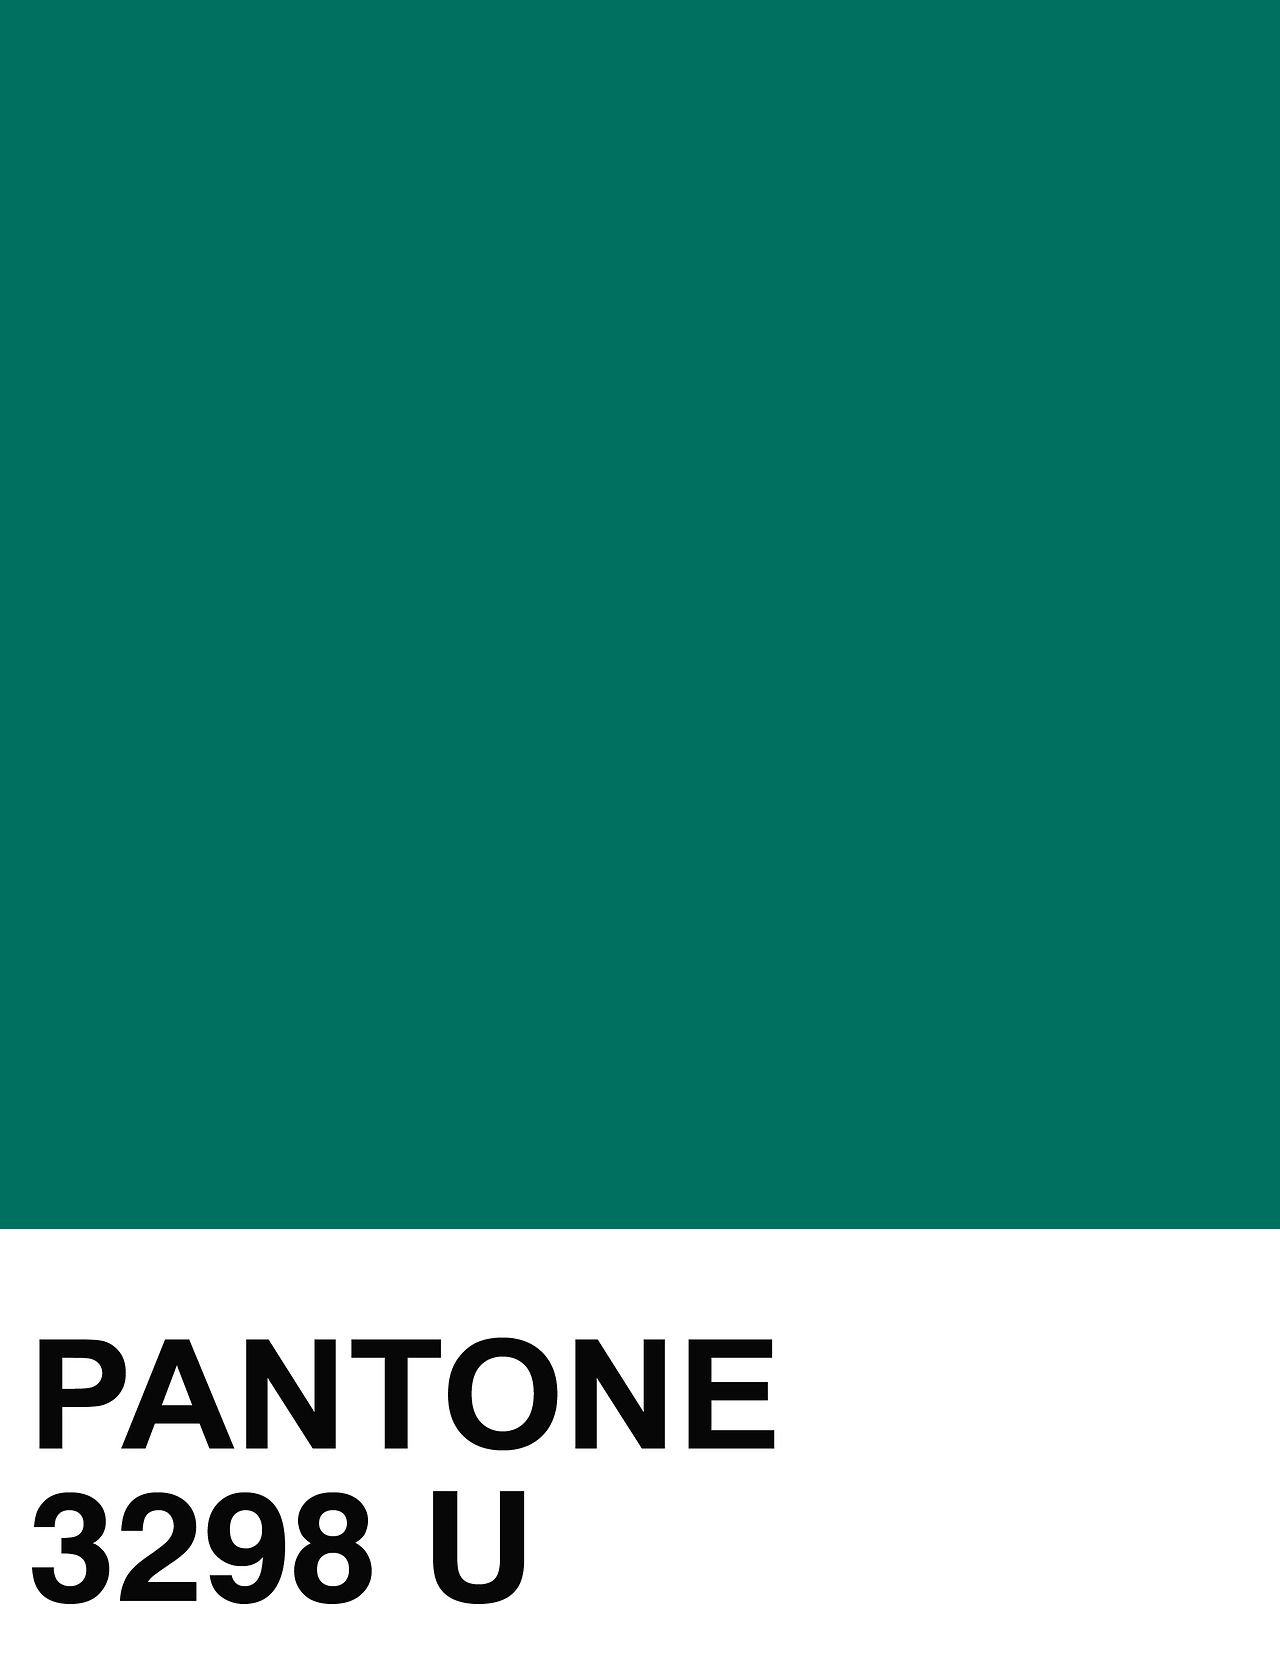 Pantone solid uncoated diseo pinterest pantone pantone solid uncoated color swatches for week love this color inspiration geenschuldenfo Choice Image